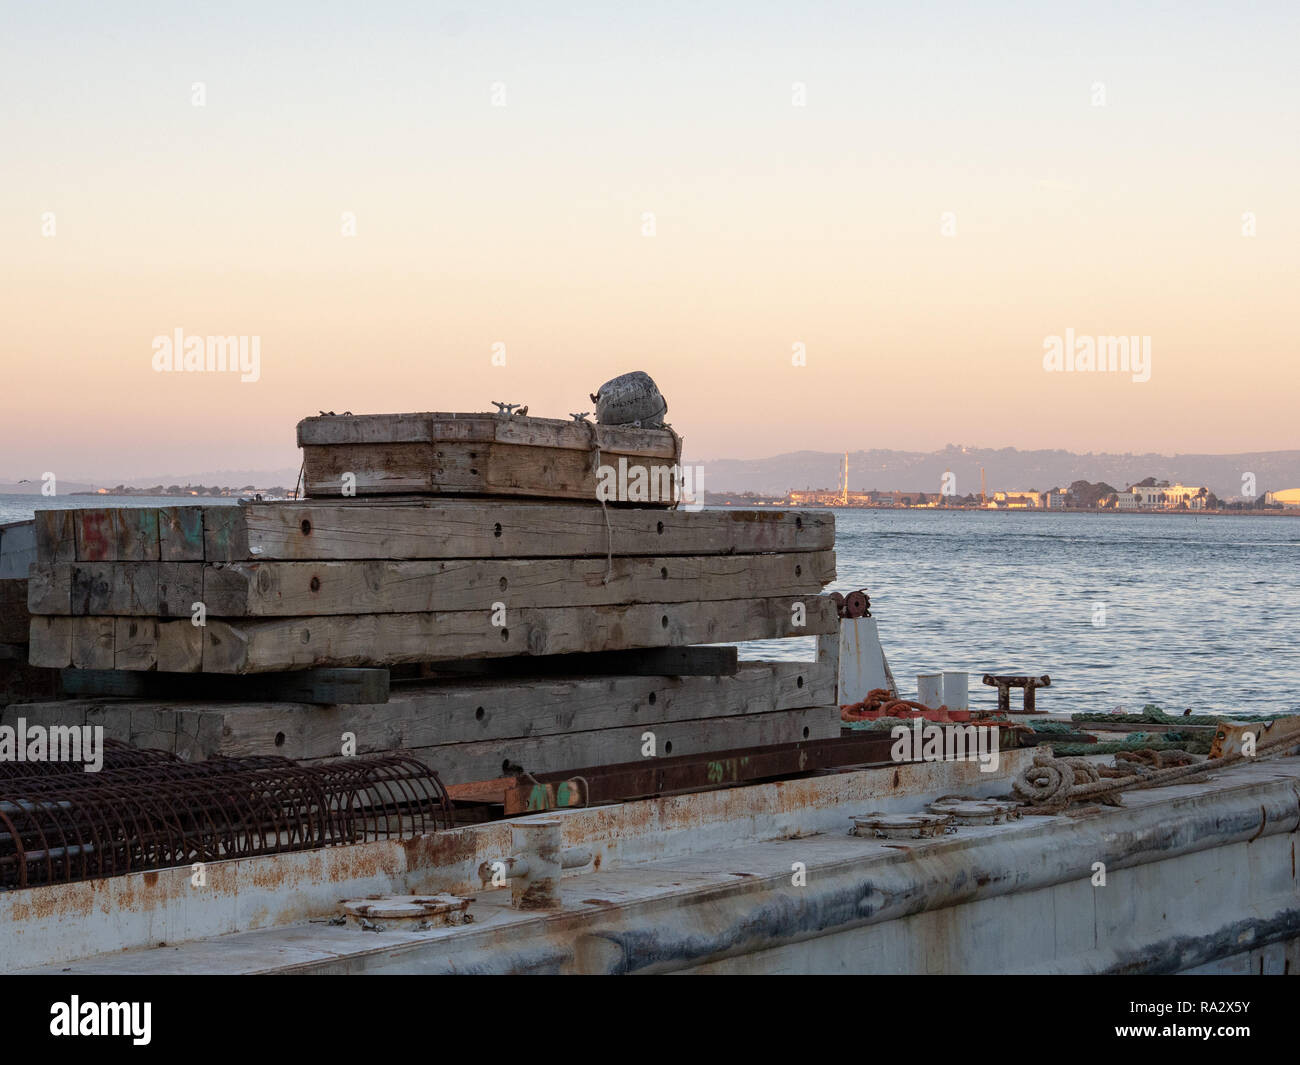 Wooden pallets and building materials sitting on a cargo ship overlooking body of water and shoreline - Stock Image